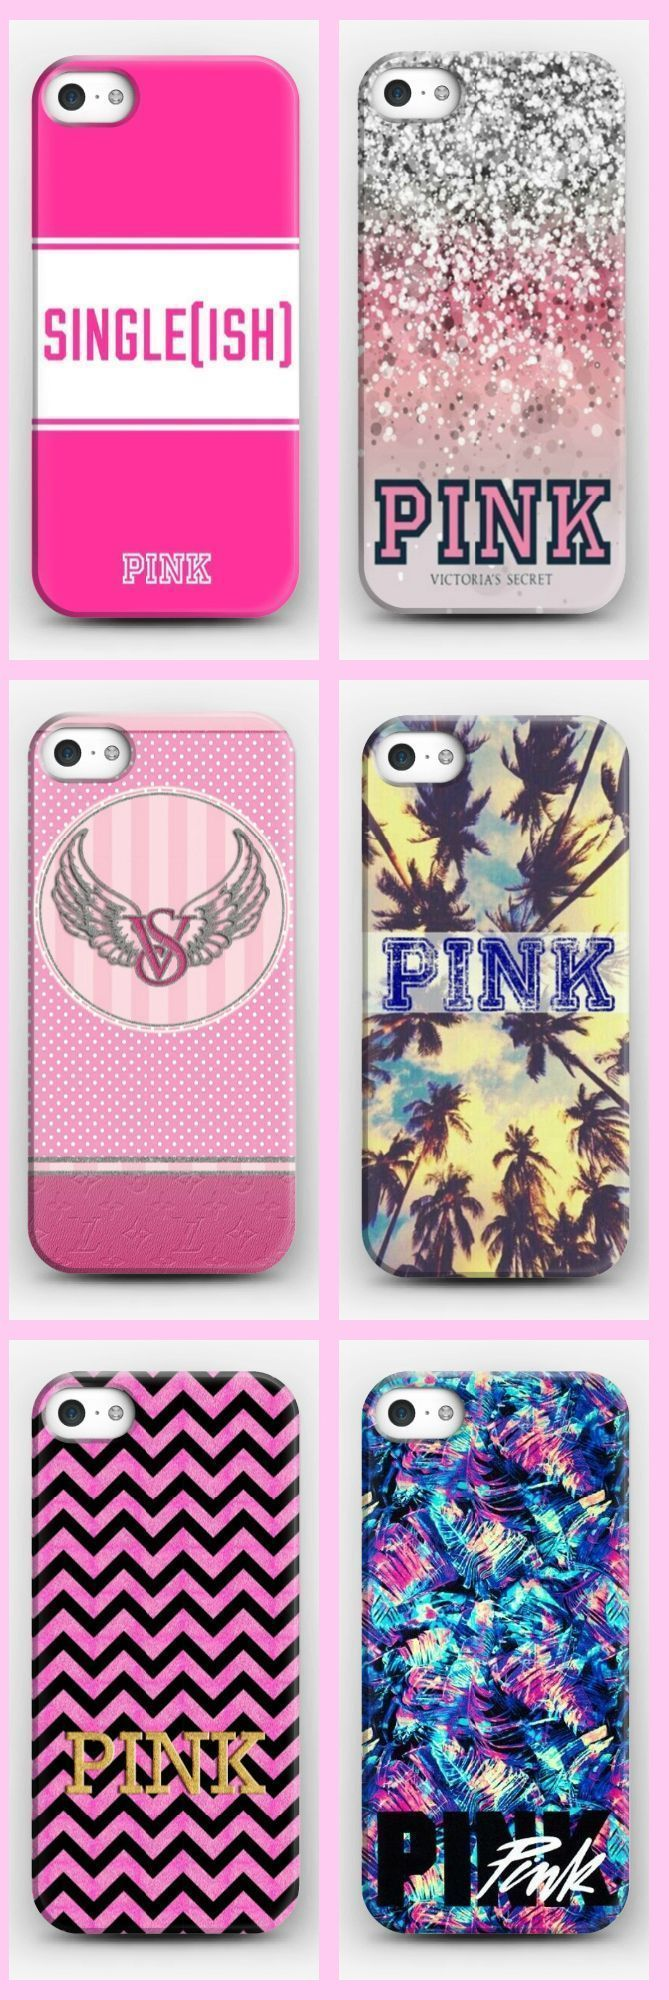 Victoria's Secret PINK 1986 PC Hard Case Covers For iPhone 4S 5 5s 5C 6 6S plus #iphone4s, #iphone5s